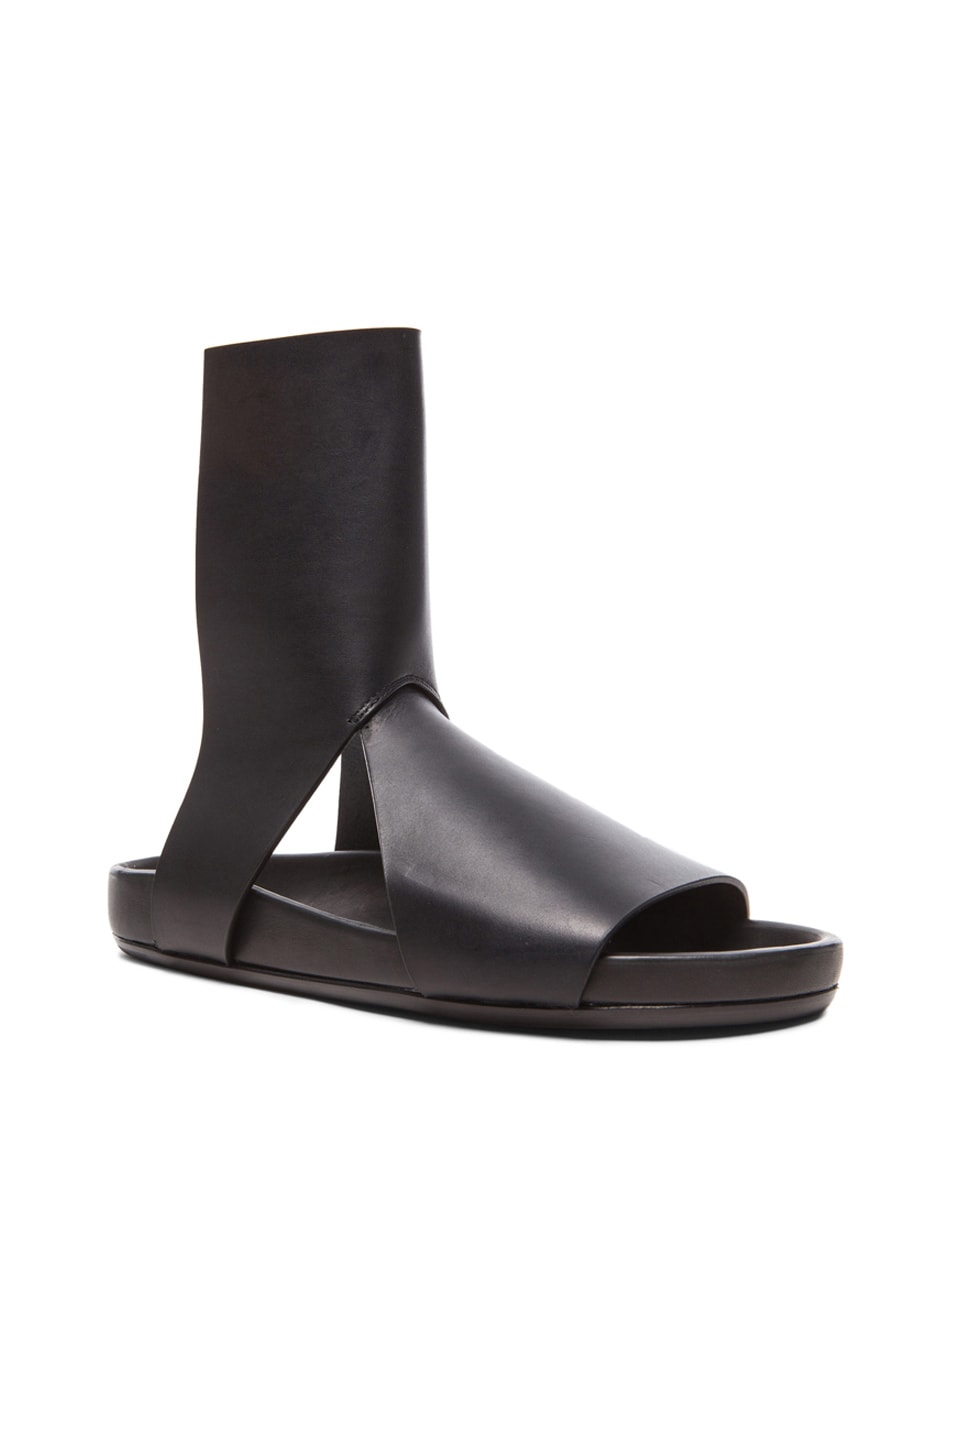 a90081394aad Image 1 of Rick Owens Spartan Granola Leather Sandals in Black